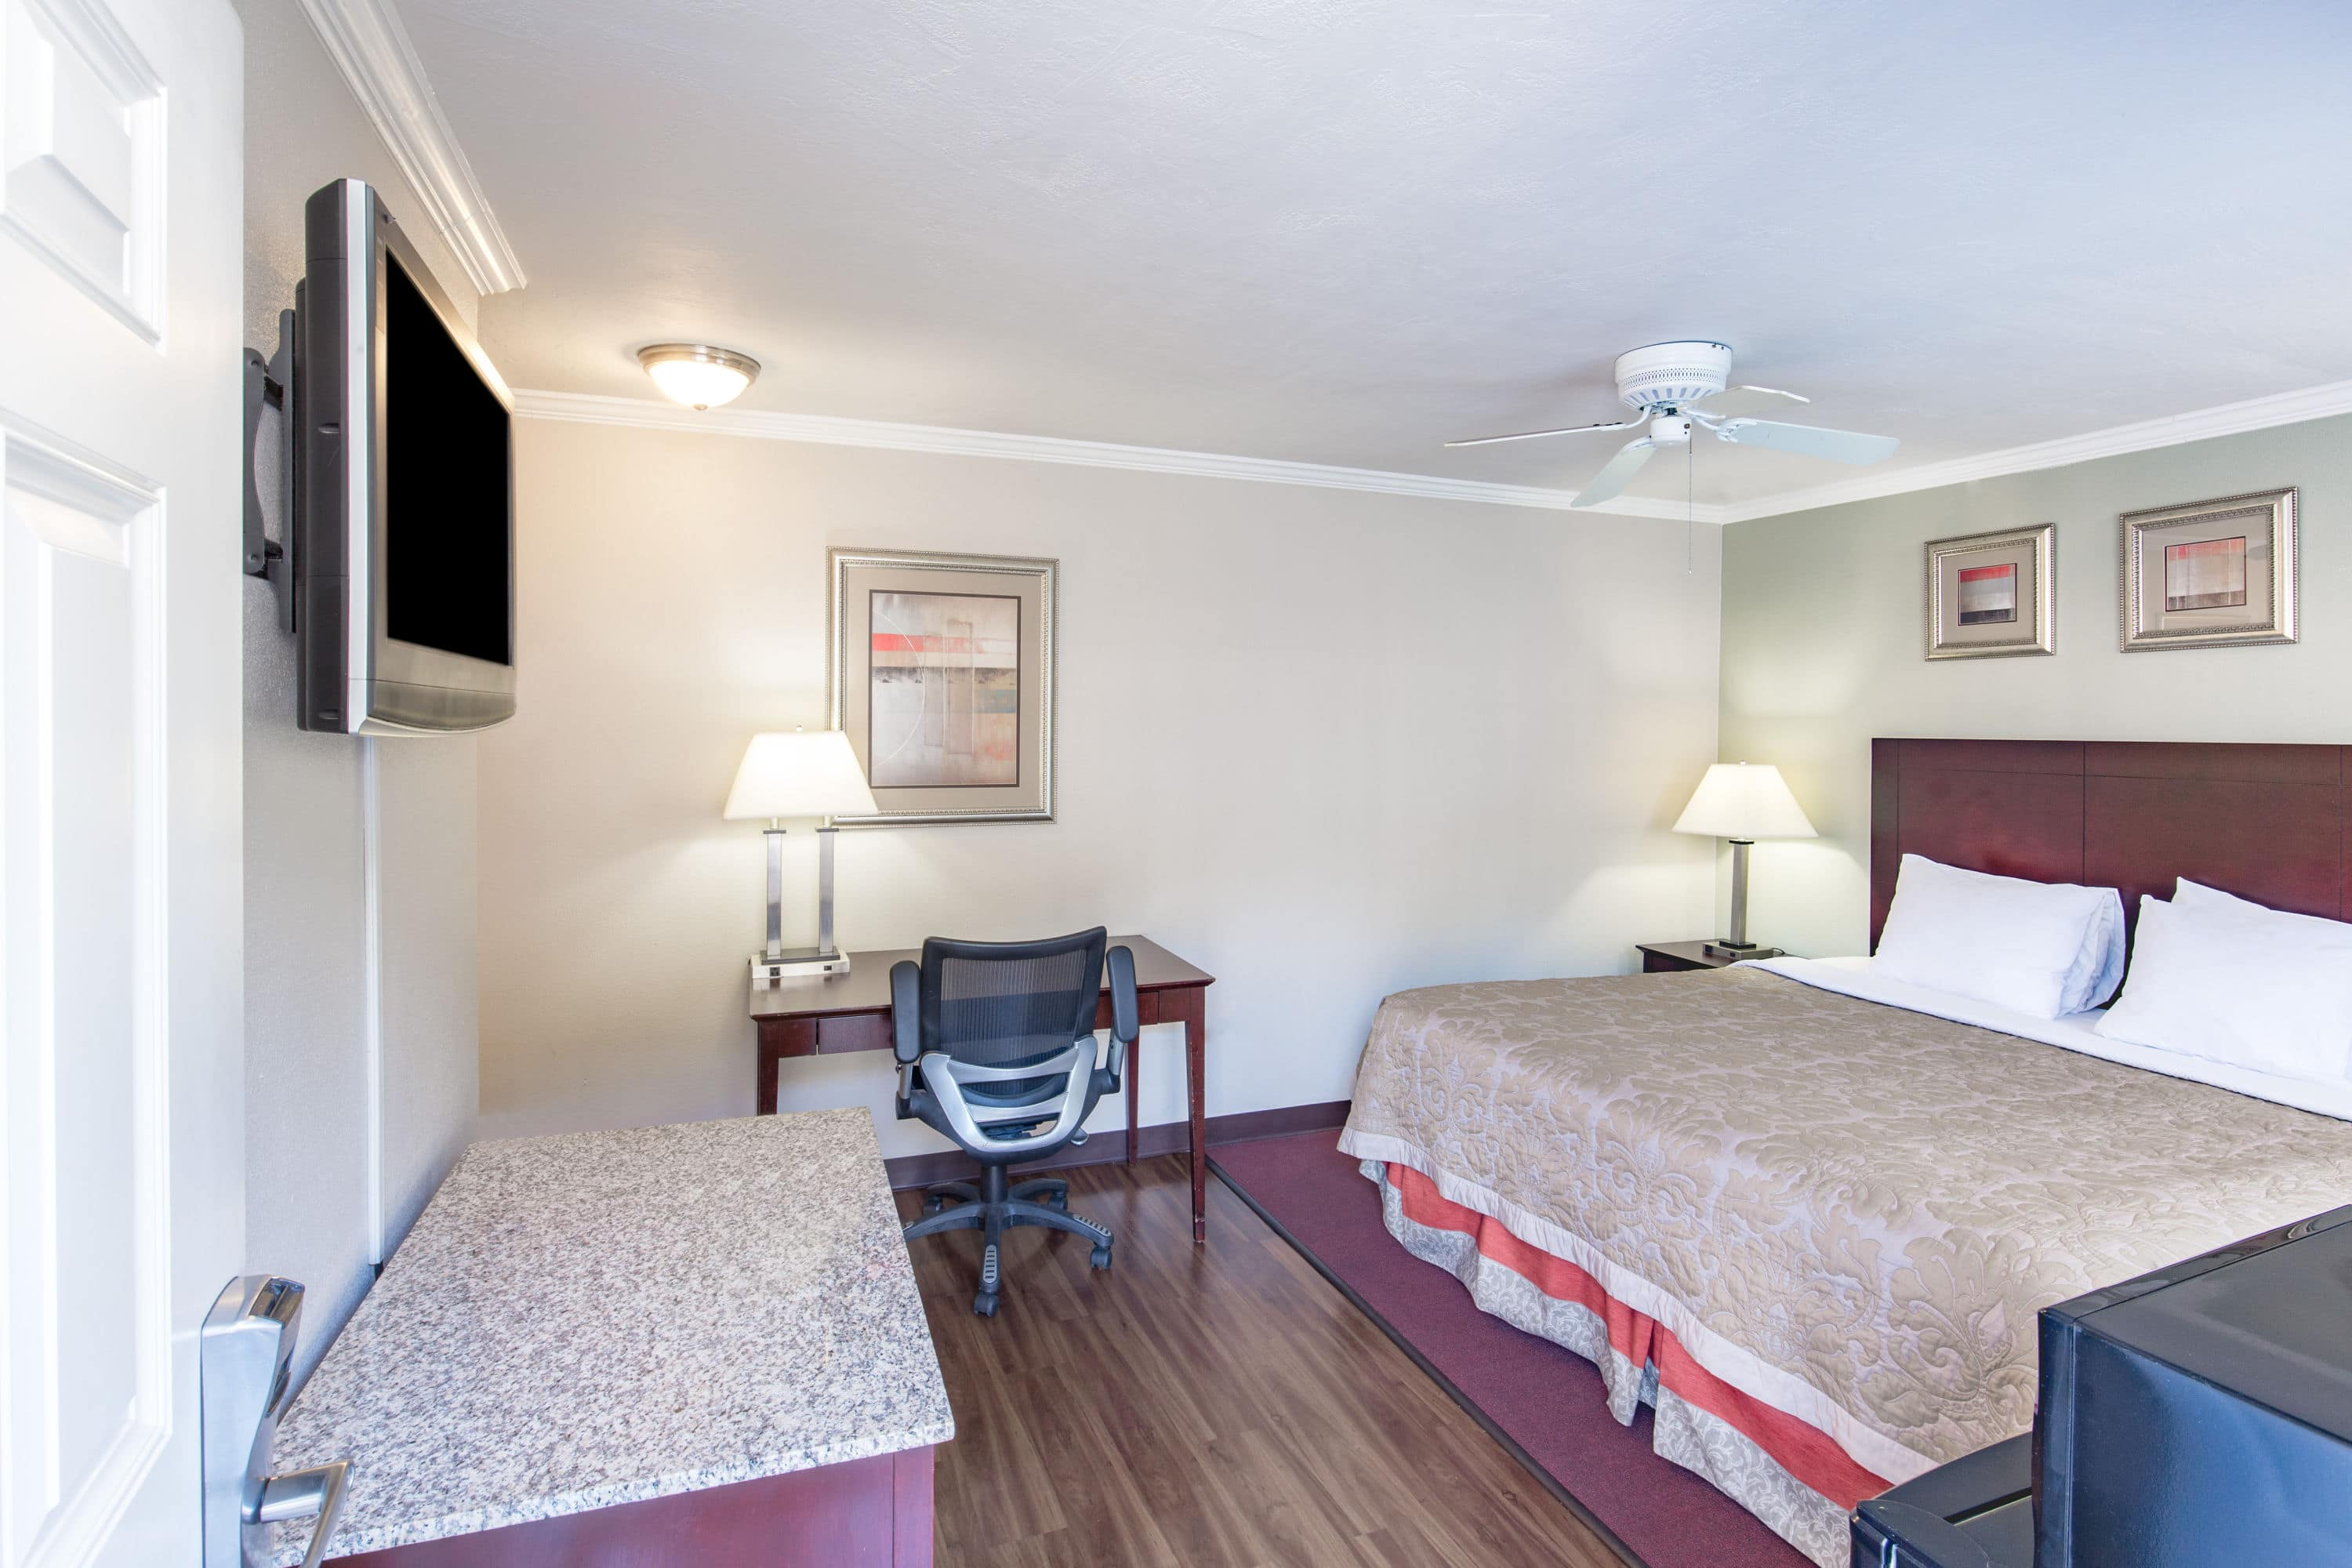 Stunning Guest Room At The Super Coos Baynorth Bend In Bay Oregon With Hotels Near Or